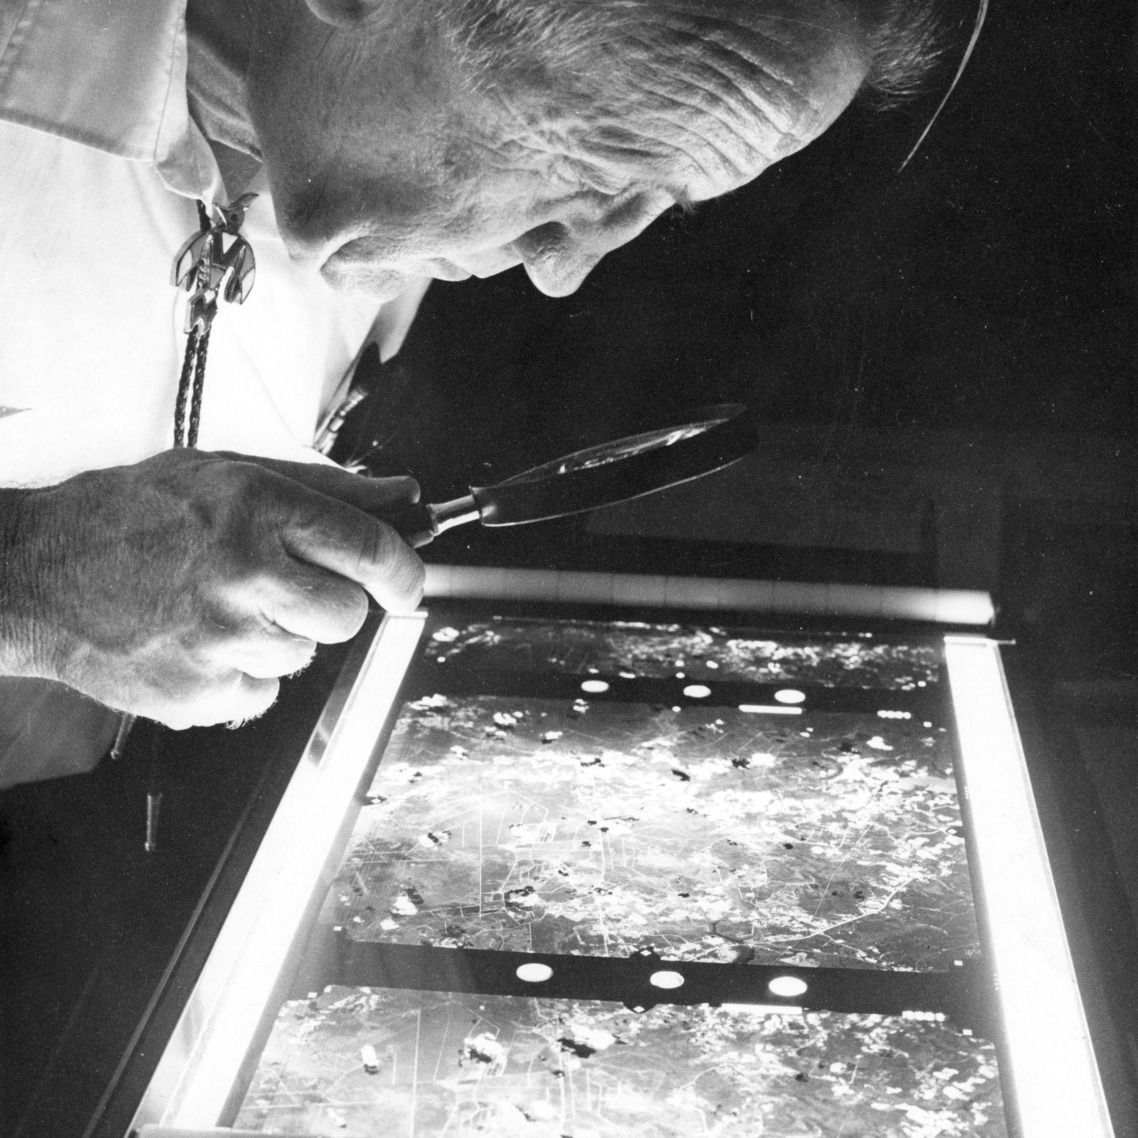 Unknown person examining aerial photographs